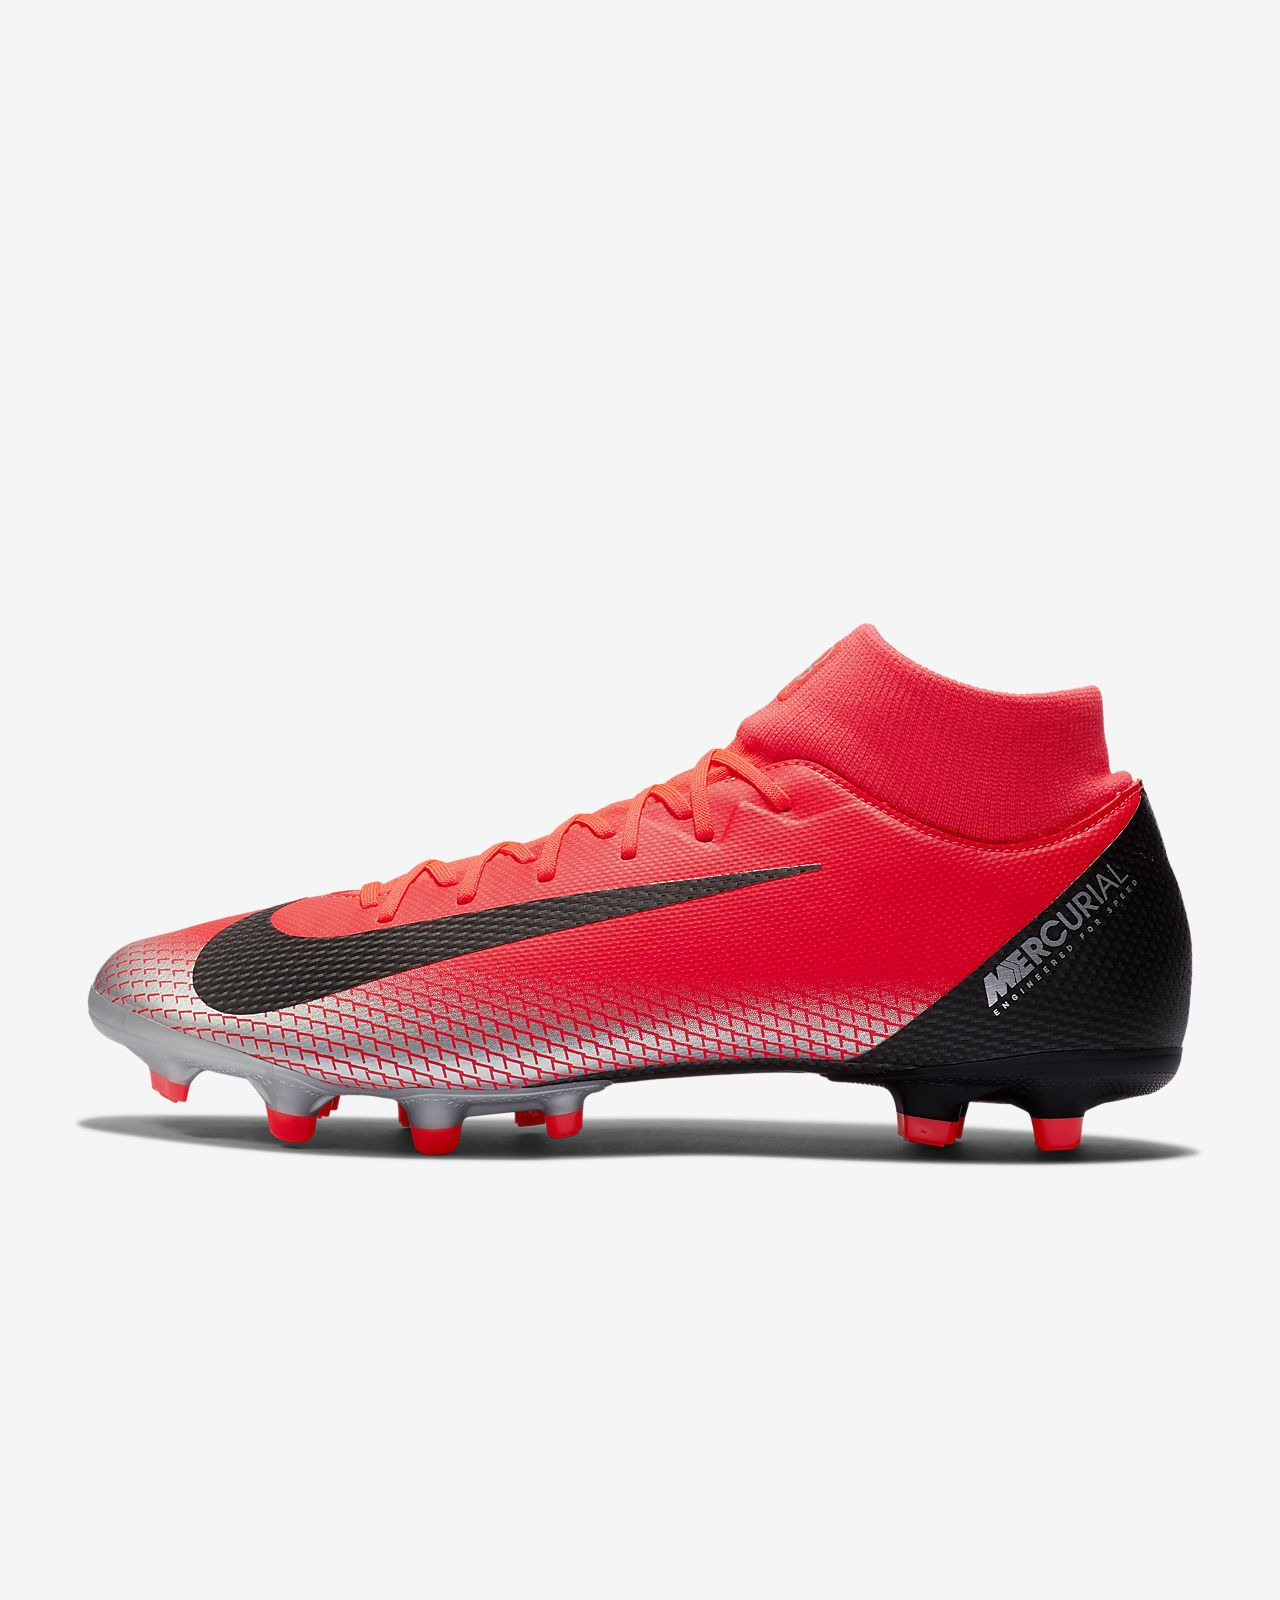 finest selection 9b08f 09b4b ... sale calzado de fútbol para múltiples superficies nike mercurial  superfly vi academy cr7 mg 087e2 fea87